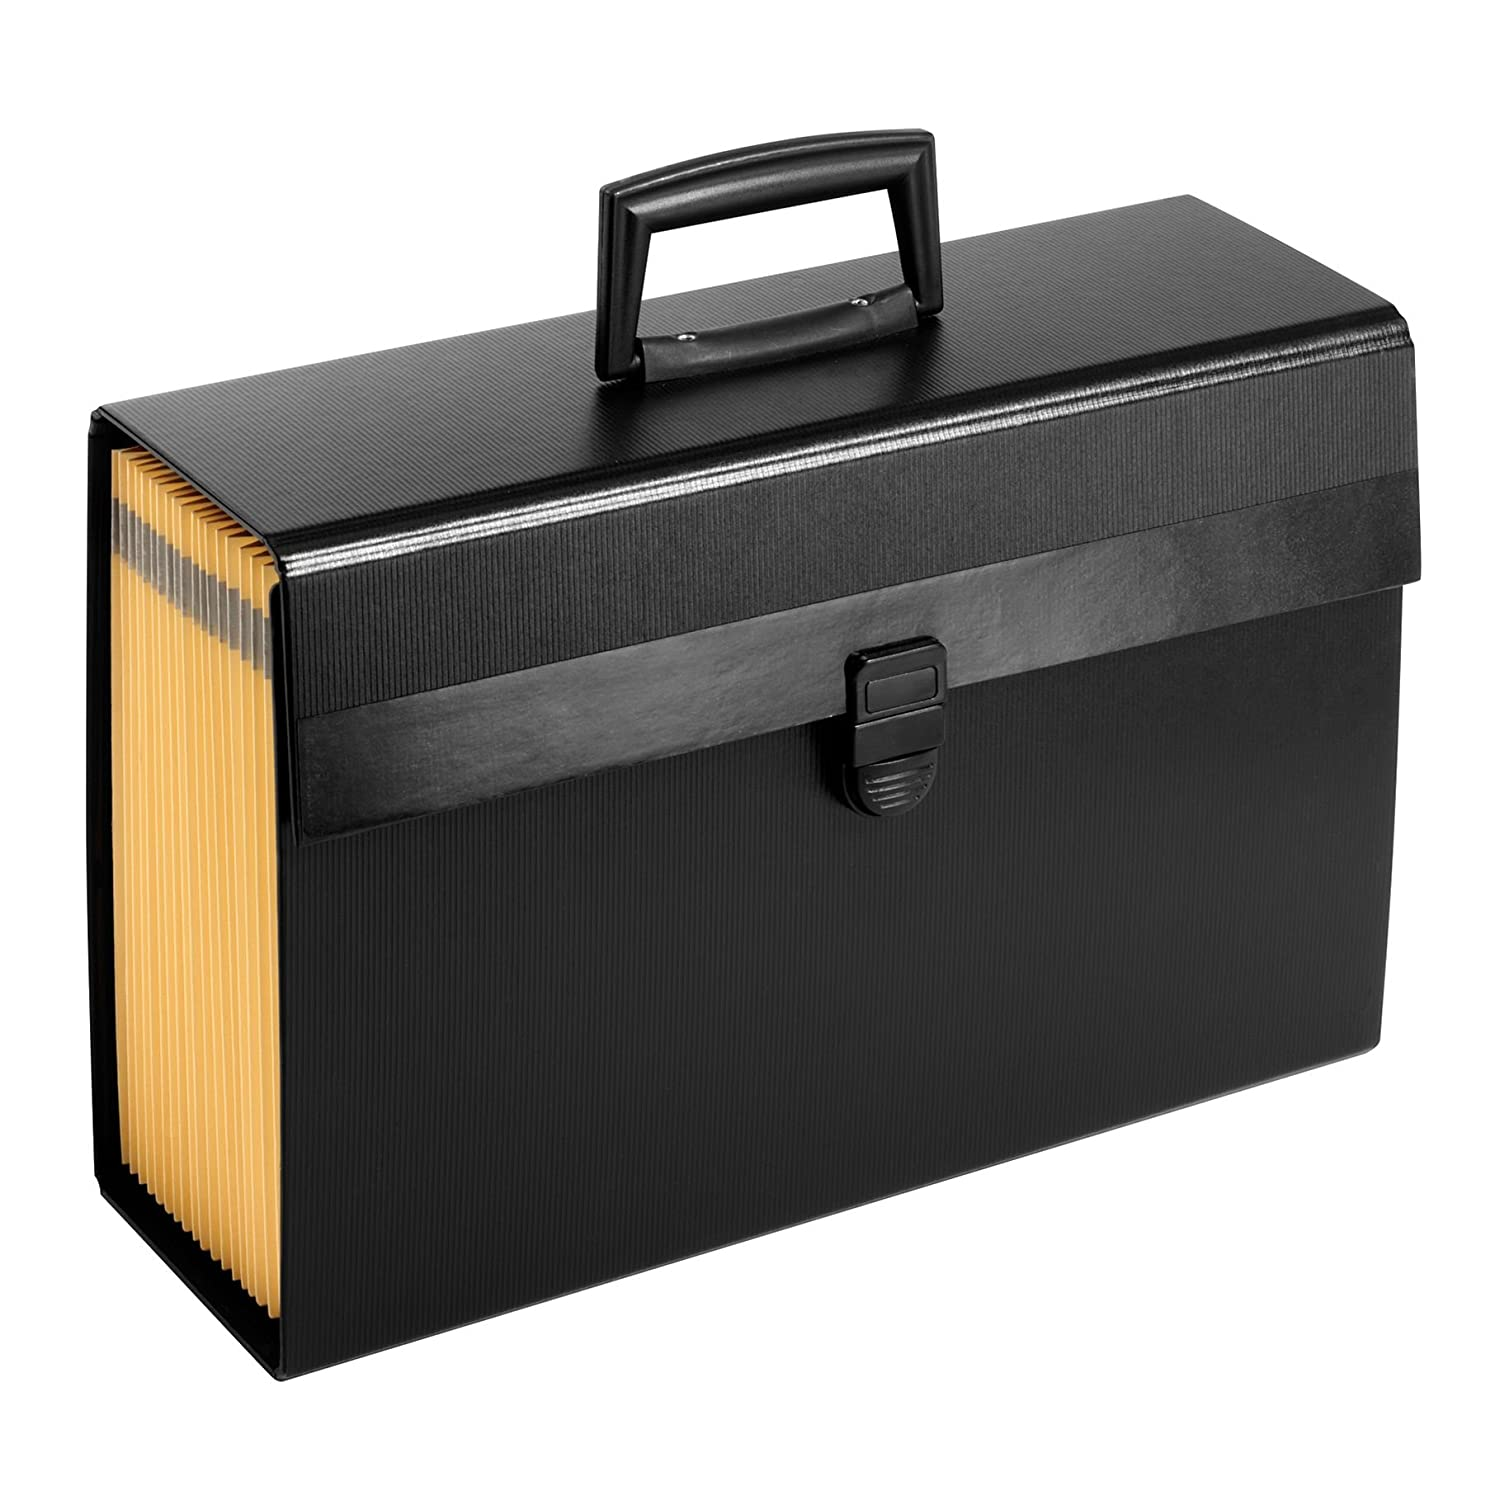 Pendaflex Portafile Expanding Organizer, 15 1/8x 10 5/8, Black (01156) 15 1/8x 10 5/8 Esselte Corporation